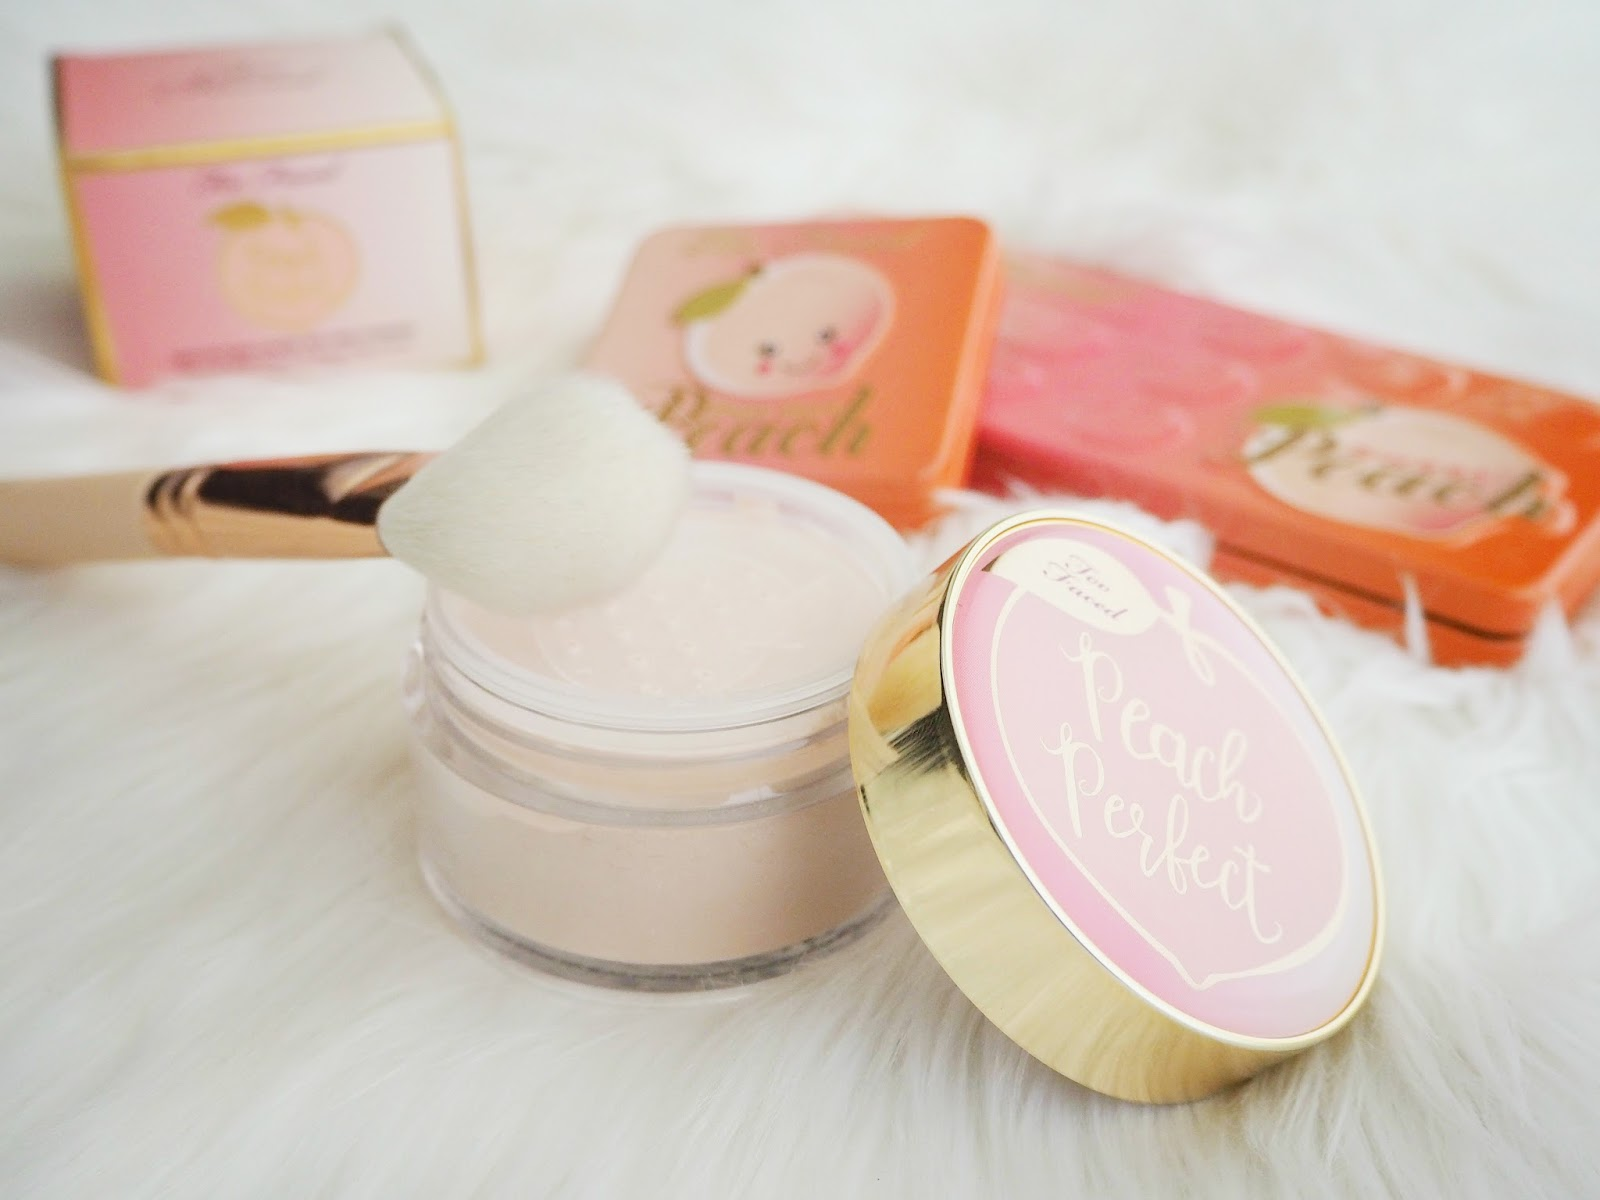 Peach Perfect Mattifying Loose Setting Powder by Too Faced #6